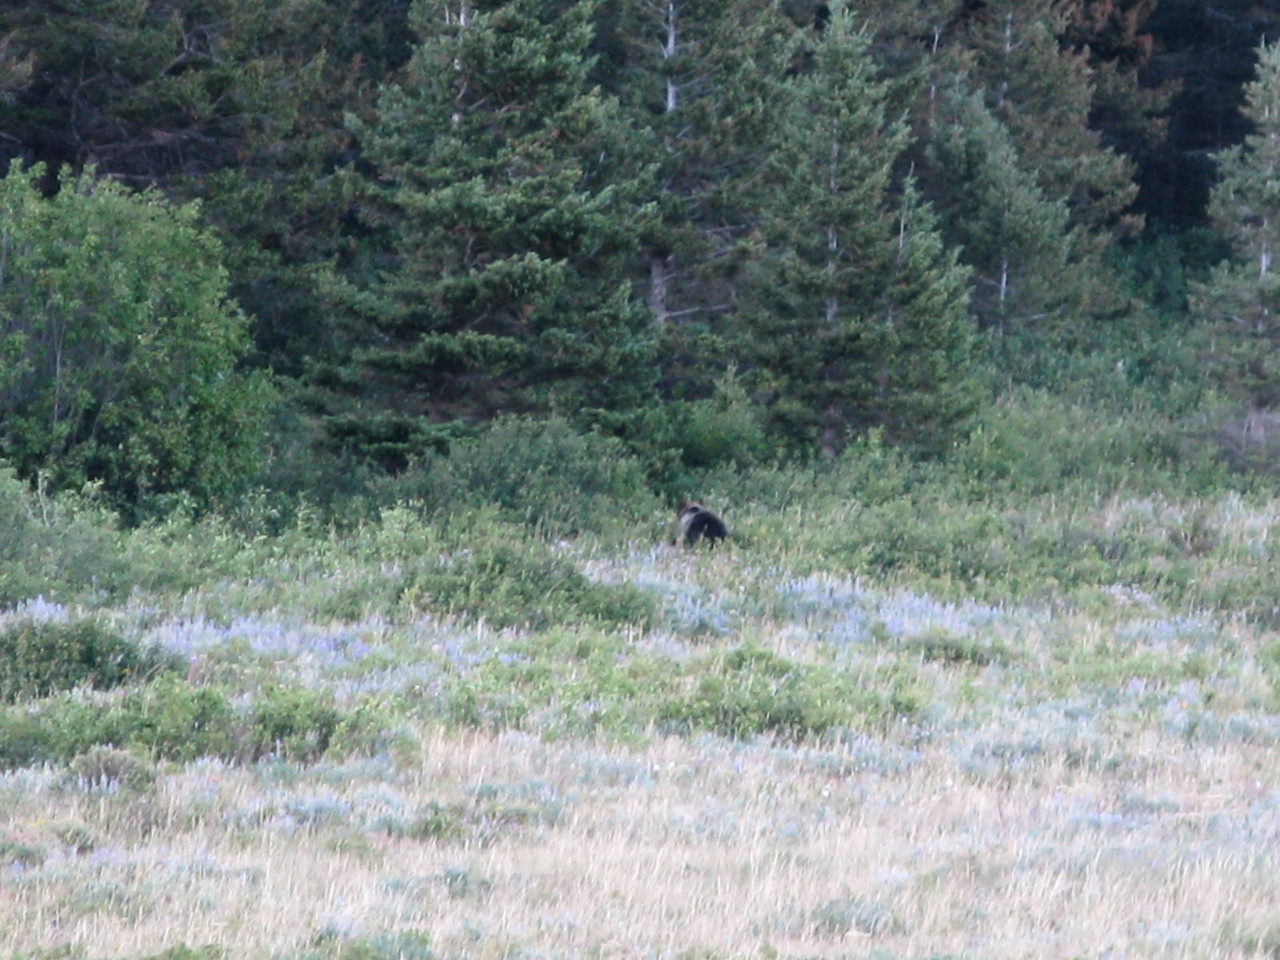 Farther back down the road, we came upon this grizzly bear in the meadow.  It is probably the same one we had seen in the morning on the way to the Highline Trail.